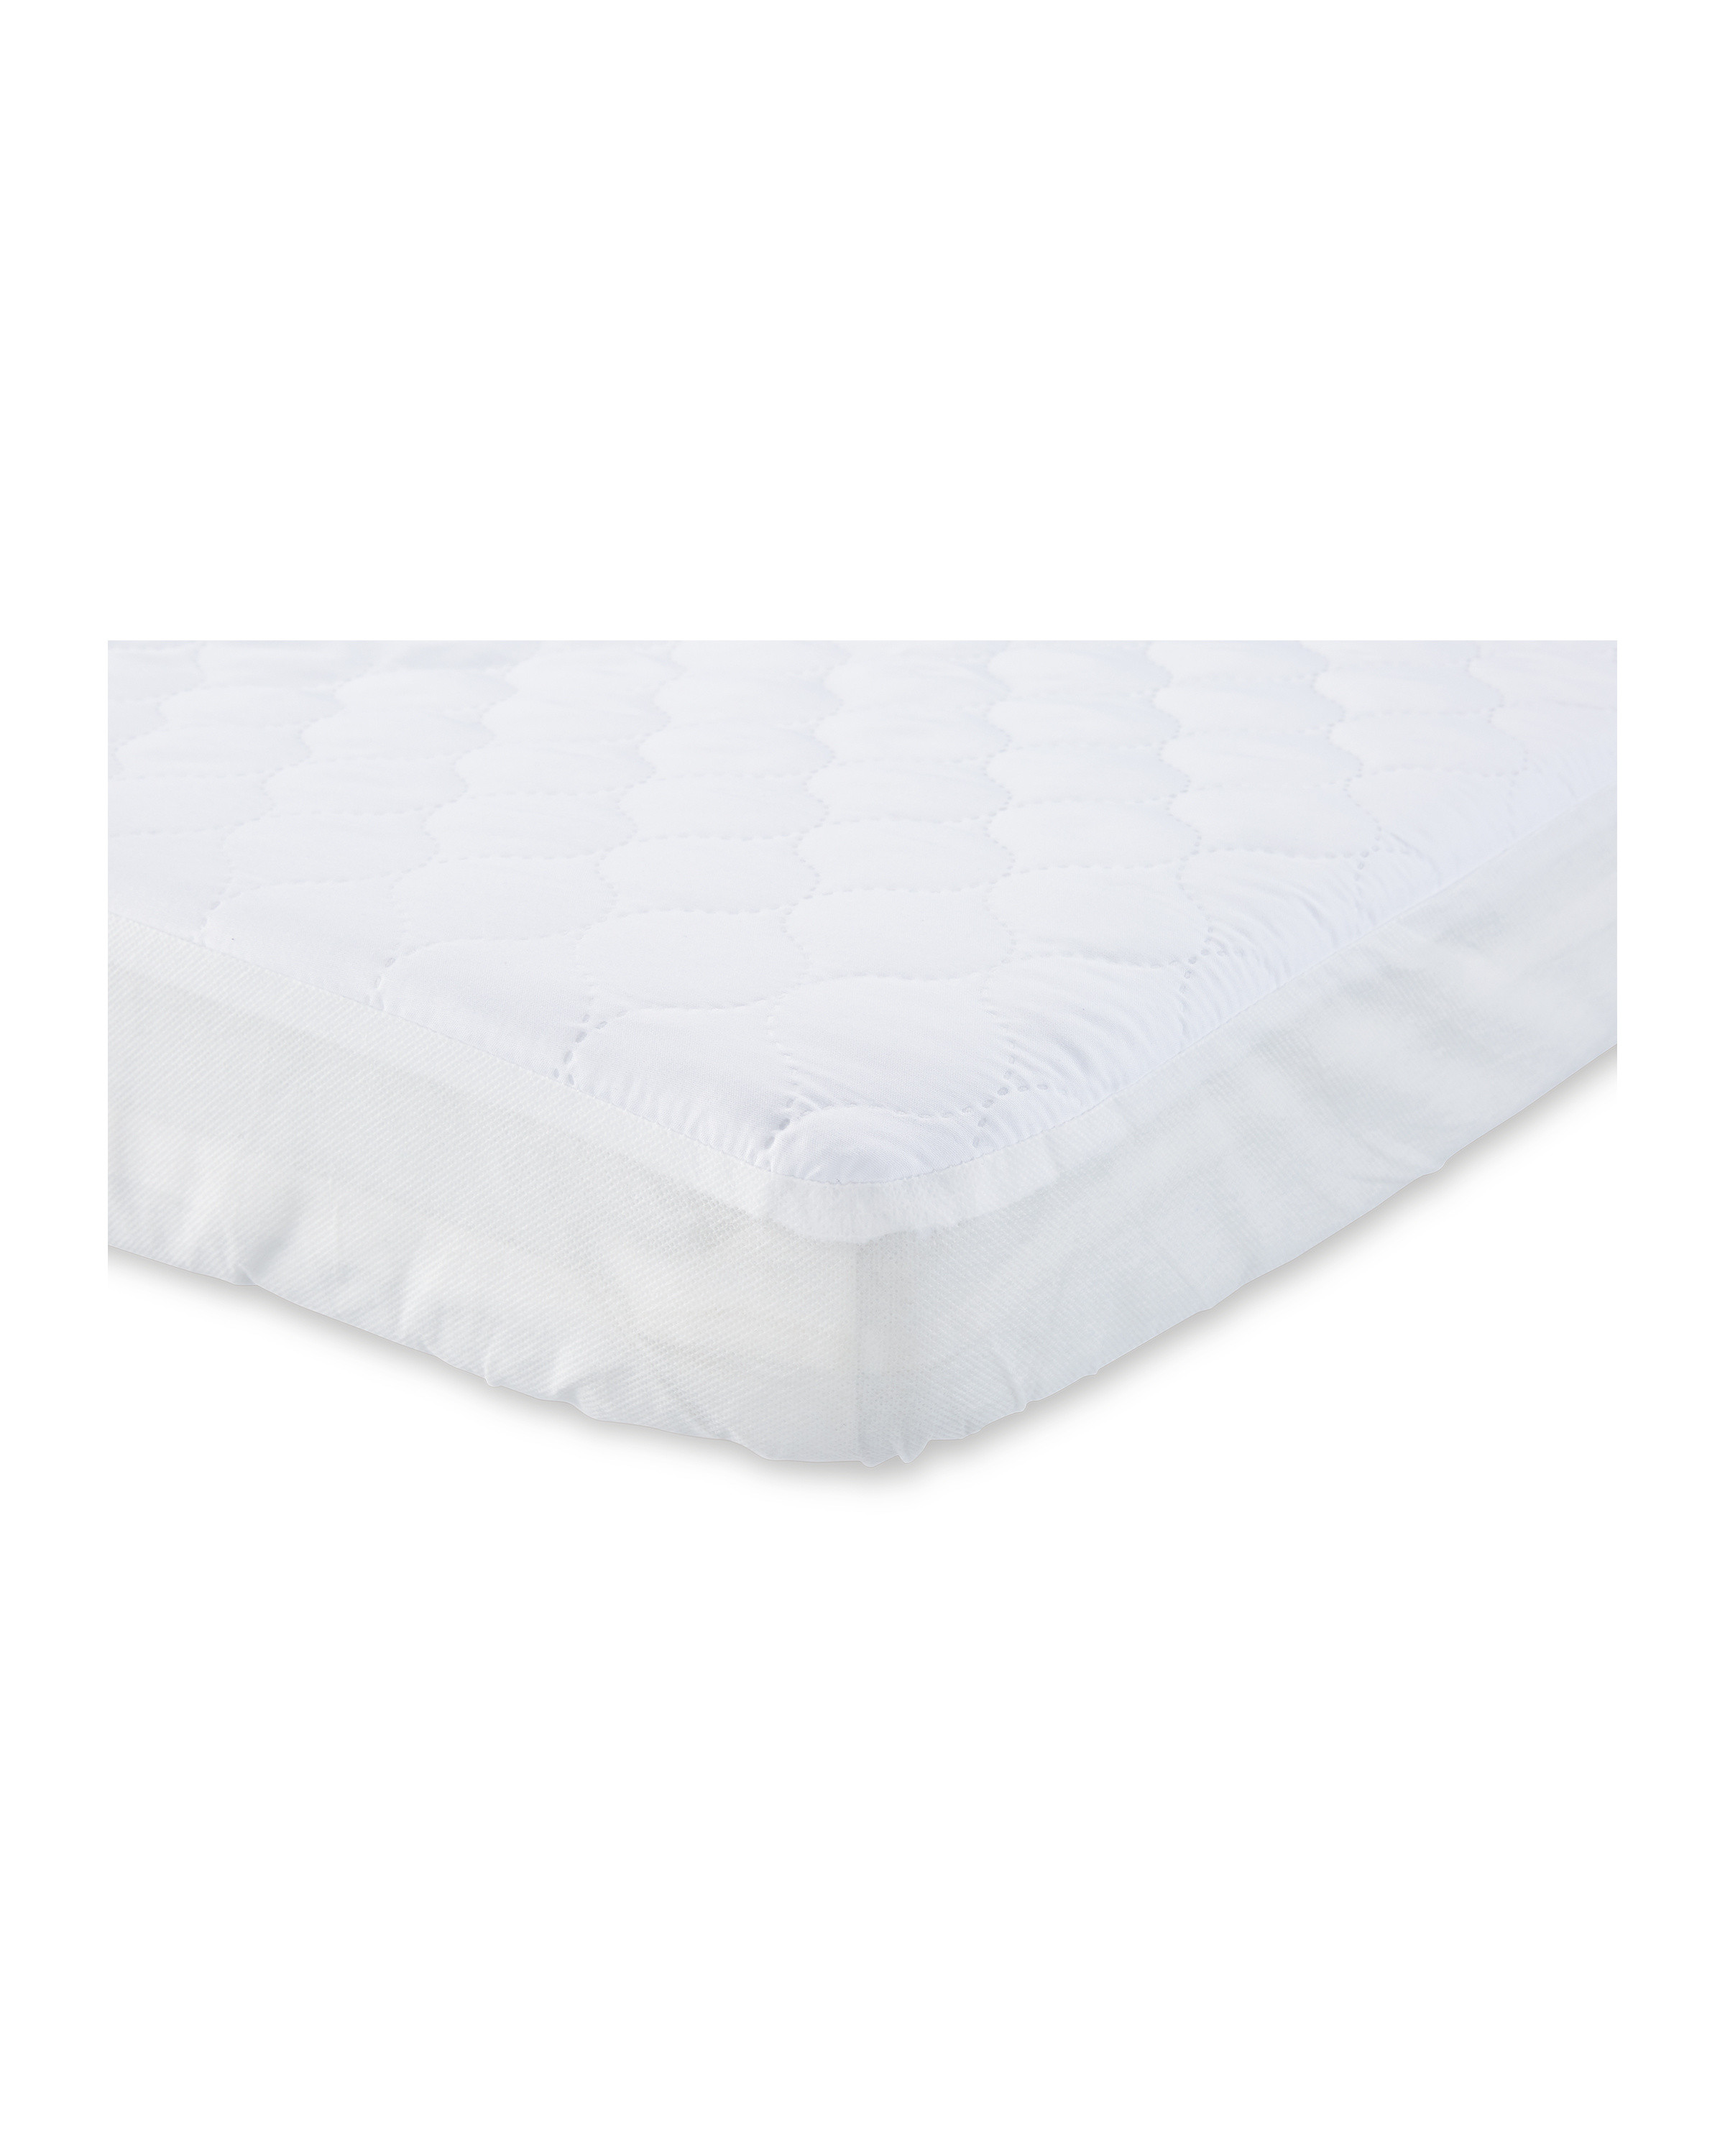 upc polyester com company waterproof mattress louisville cover upcitemdb bedding prod info antimicrobial barcode